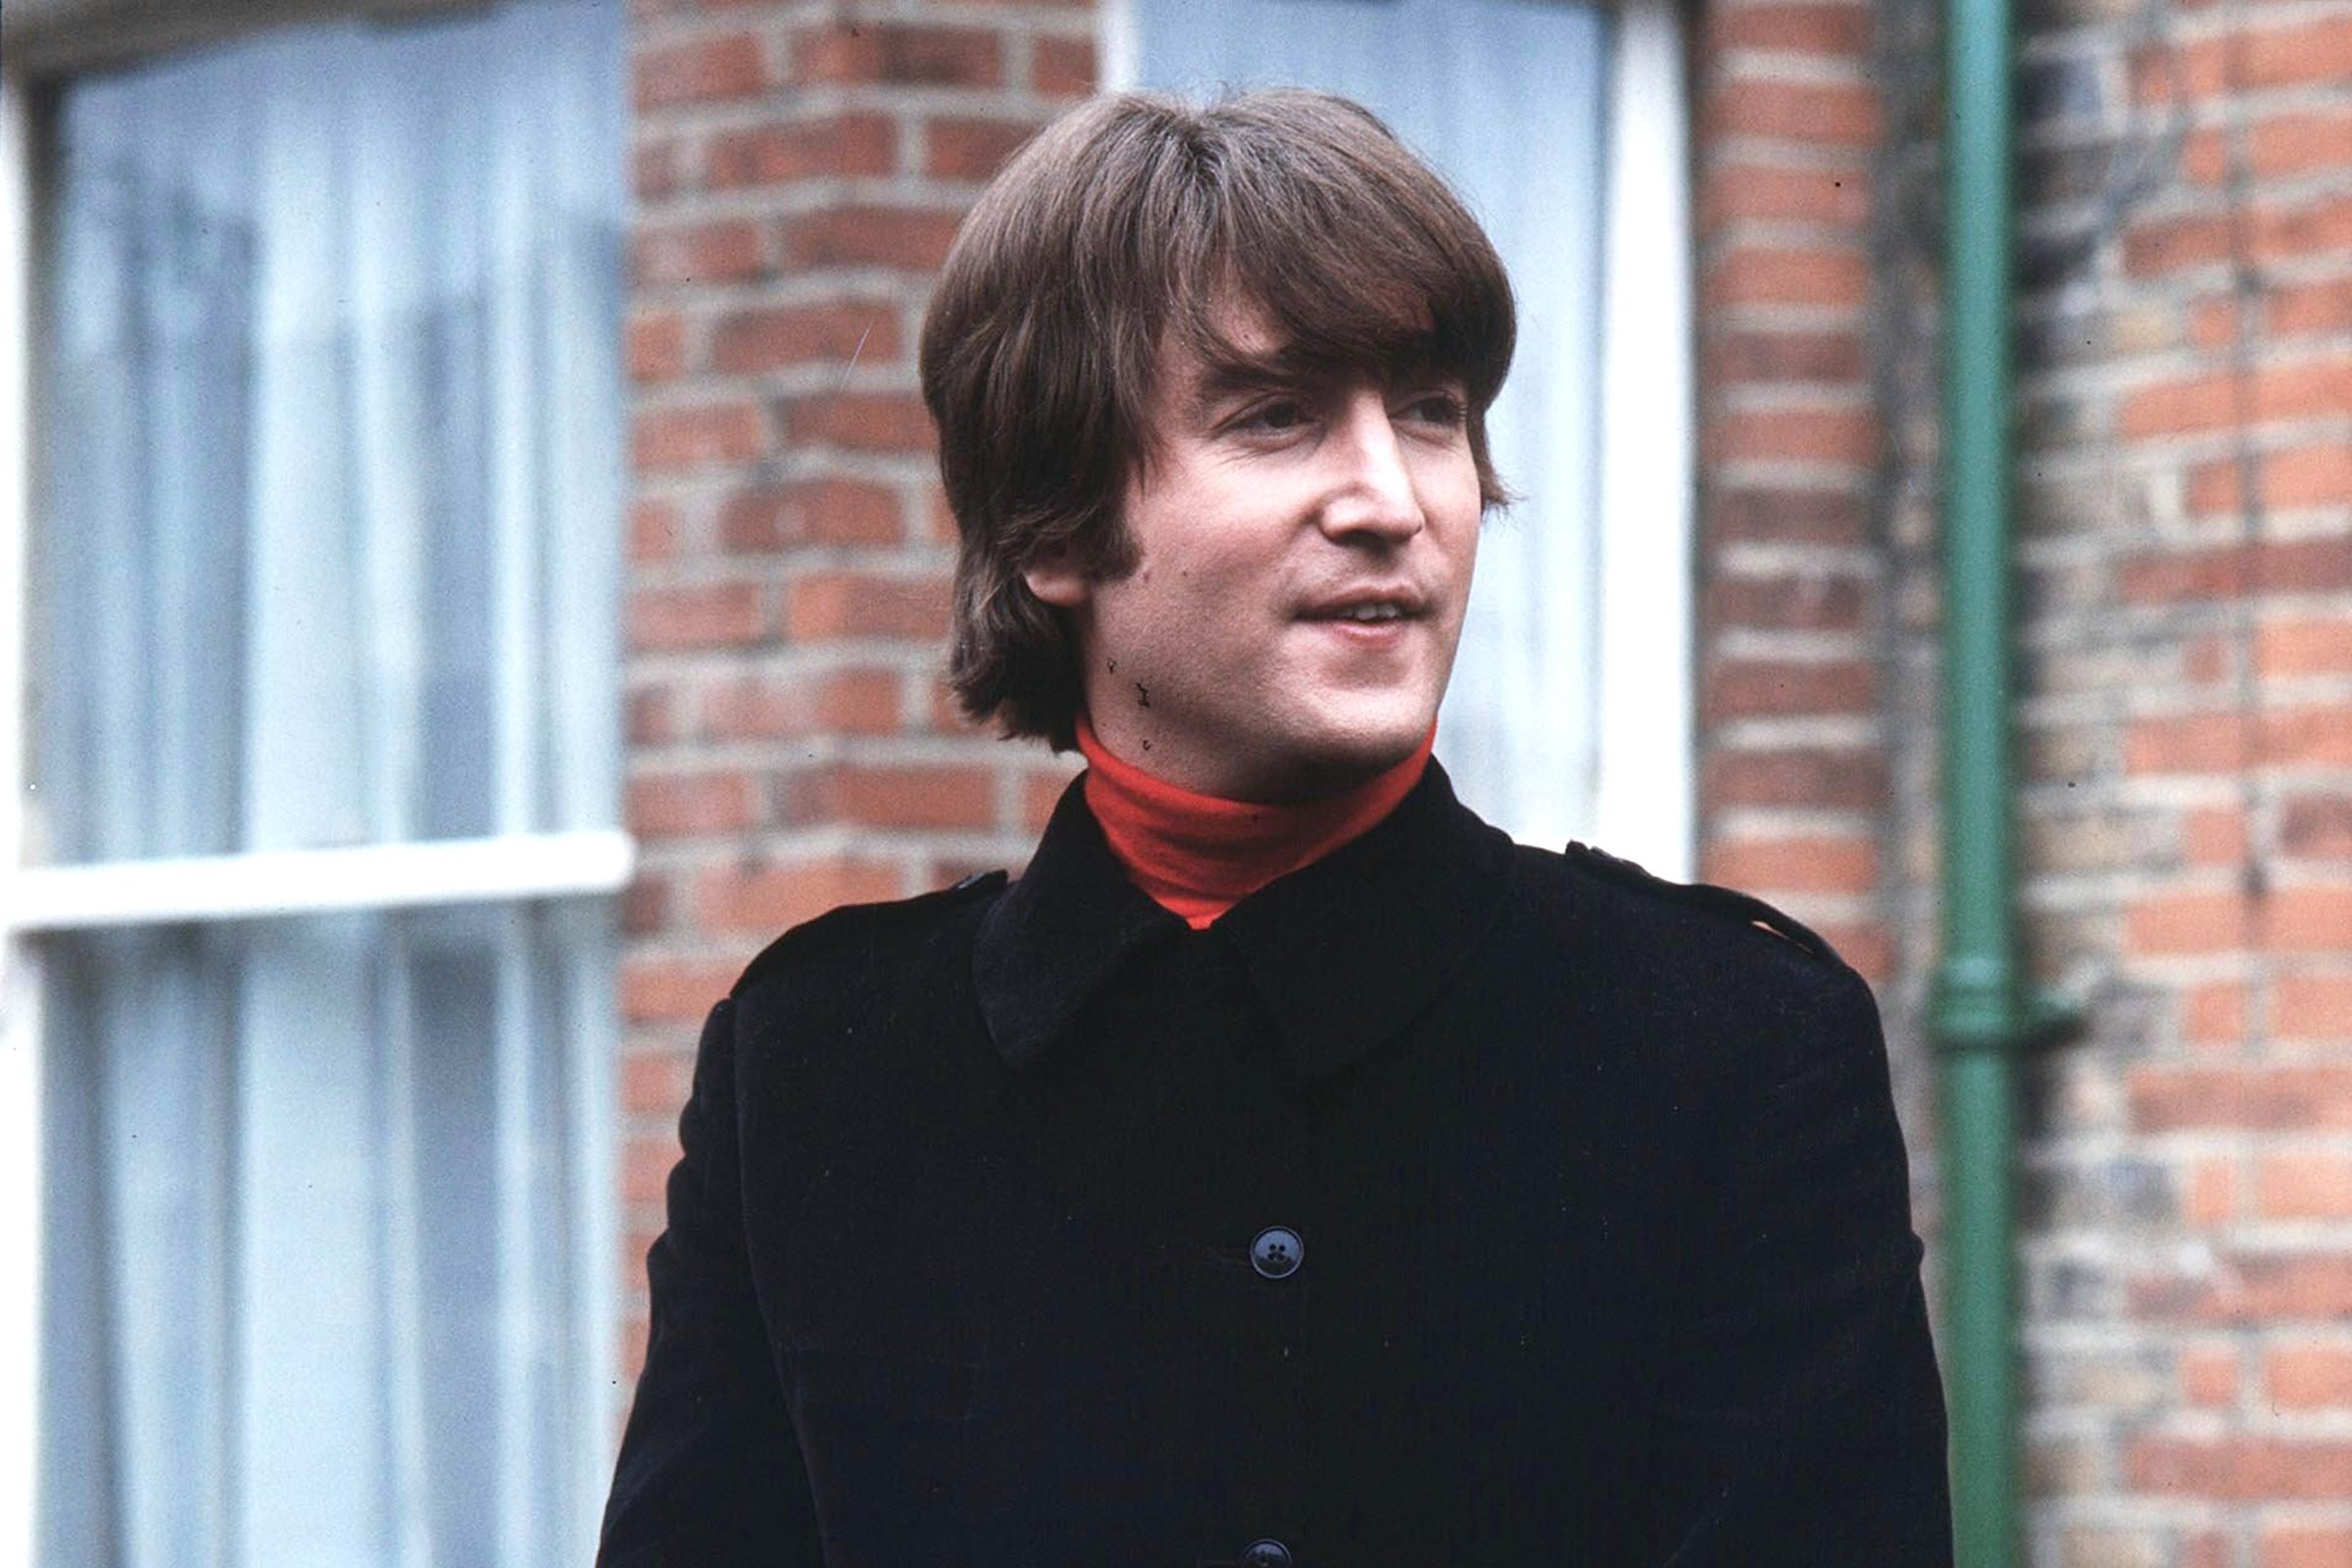 Mandatory Credit: Photo by Pierluigi Praturlon/Shutterstock (11453b) John Lennon in Ailsa Avenue, Twickenham The Beatles Filming 'Help' - 1965